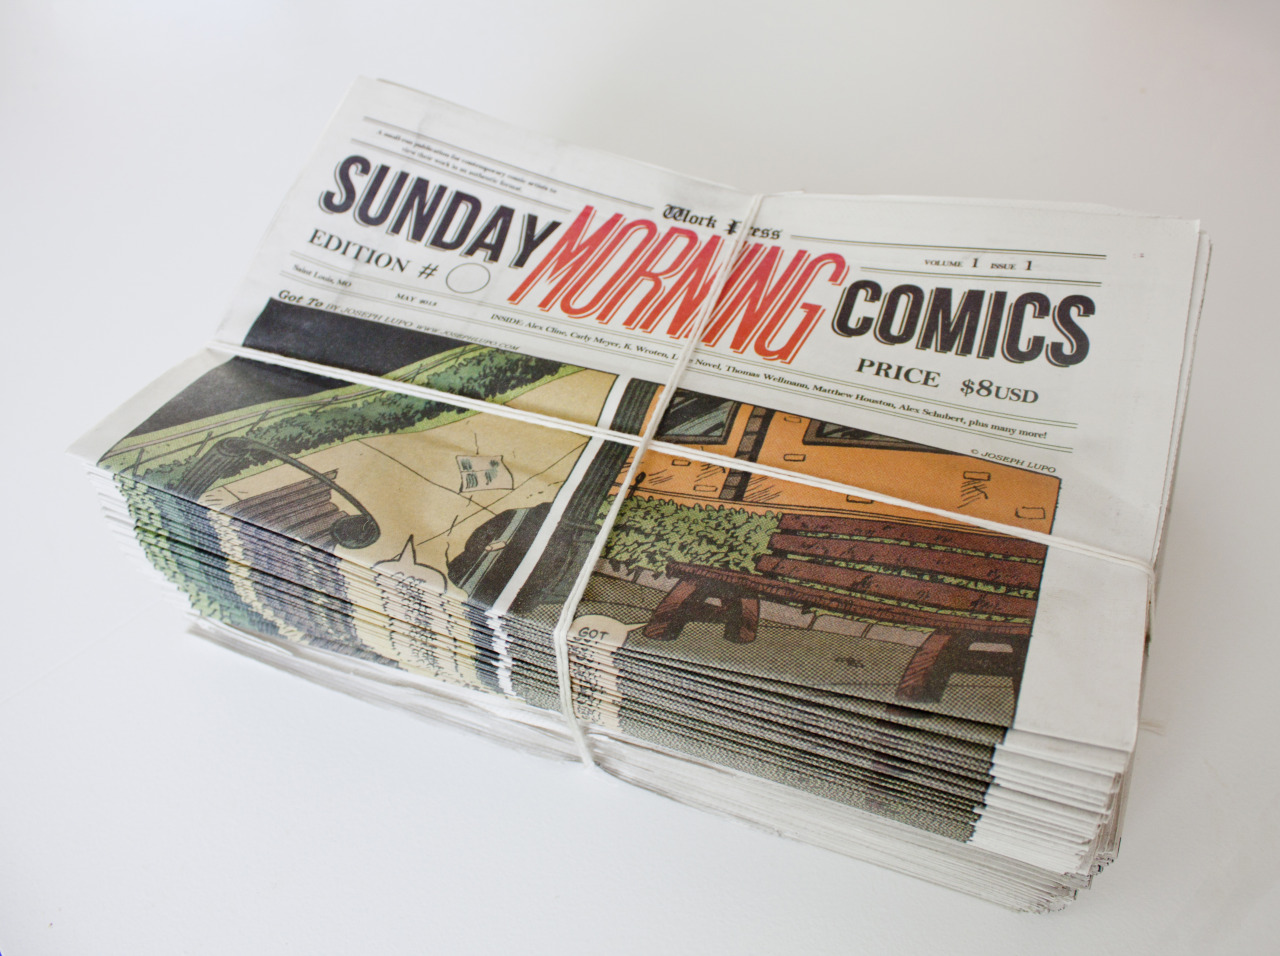 Sunday Morning Comics Volume 1: Issue 1 Available now!! A HUGE thanks to all the artists who contributed work. This is a beautiful 8-page, full-color publication offset printed on newsprint. It looks and feels amazing, and even gets a little ink on your fingers! All issues are certified genuine by our Work Press inspectors, ready to arrive at your doorstep! Order now and start enjoying comics by these great artists.